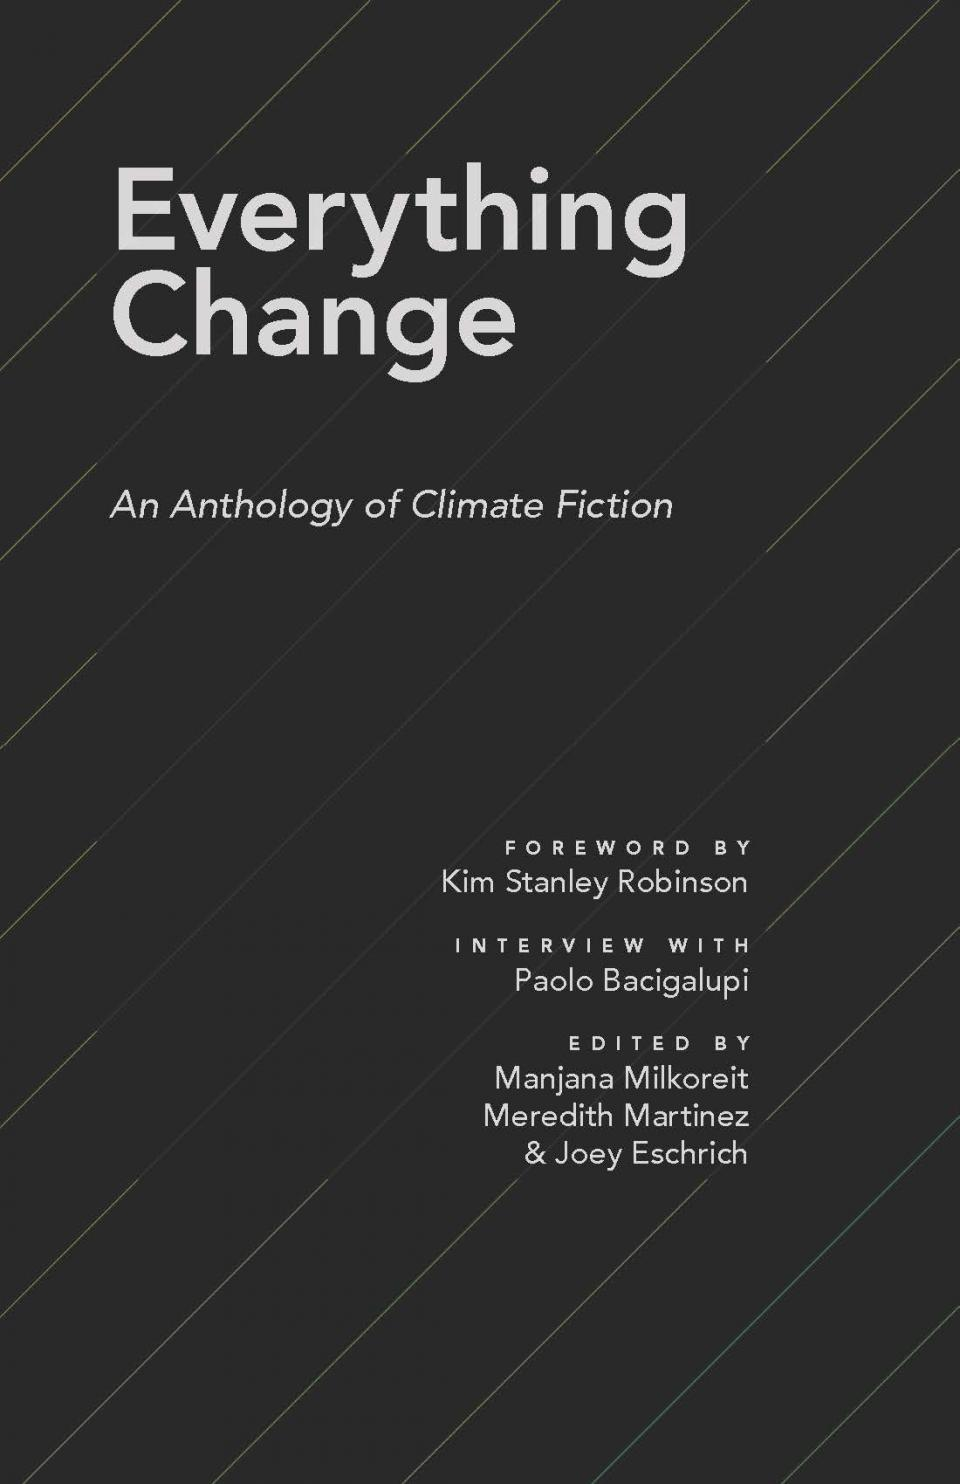 Manjana Milkoreit, Meredith Martinez (BA 2007), and Joey Eschrich (BA 2008), eds. Everything Change: An Anthology of Climate Fiction. Arizona State University, 2016.